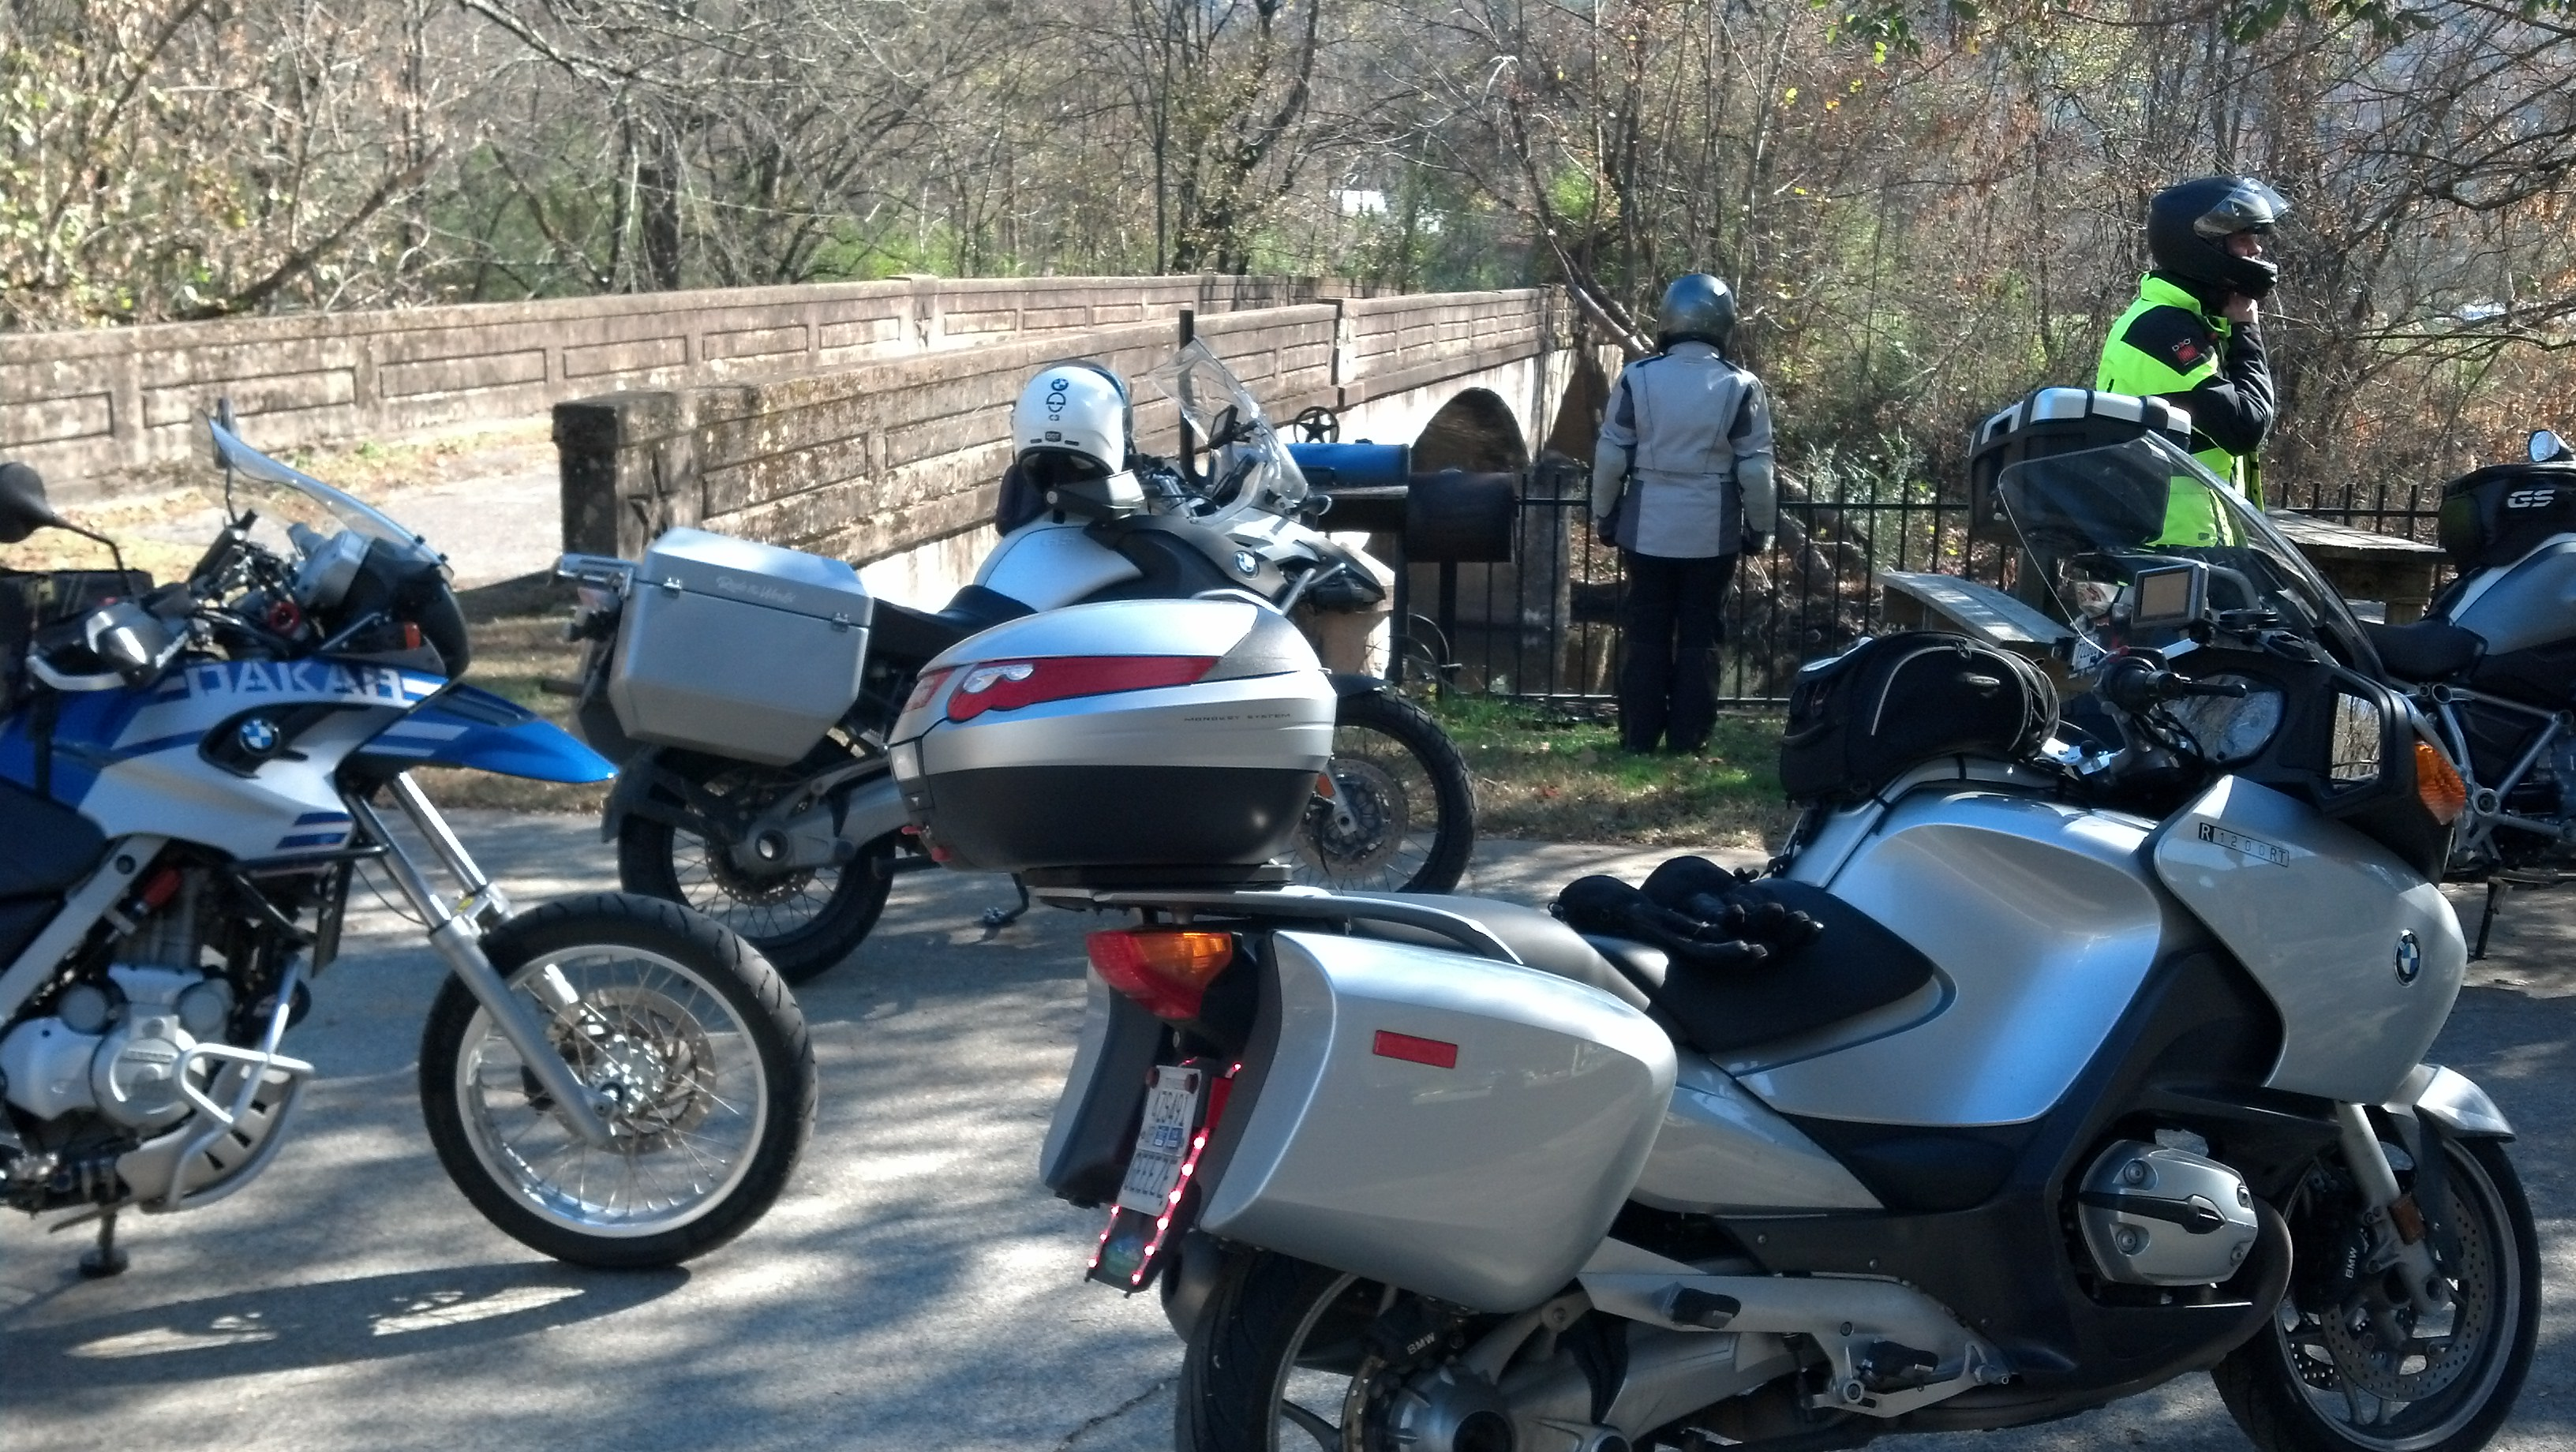 We take a pleasant tour on the motorcycle in November